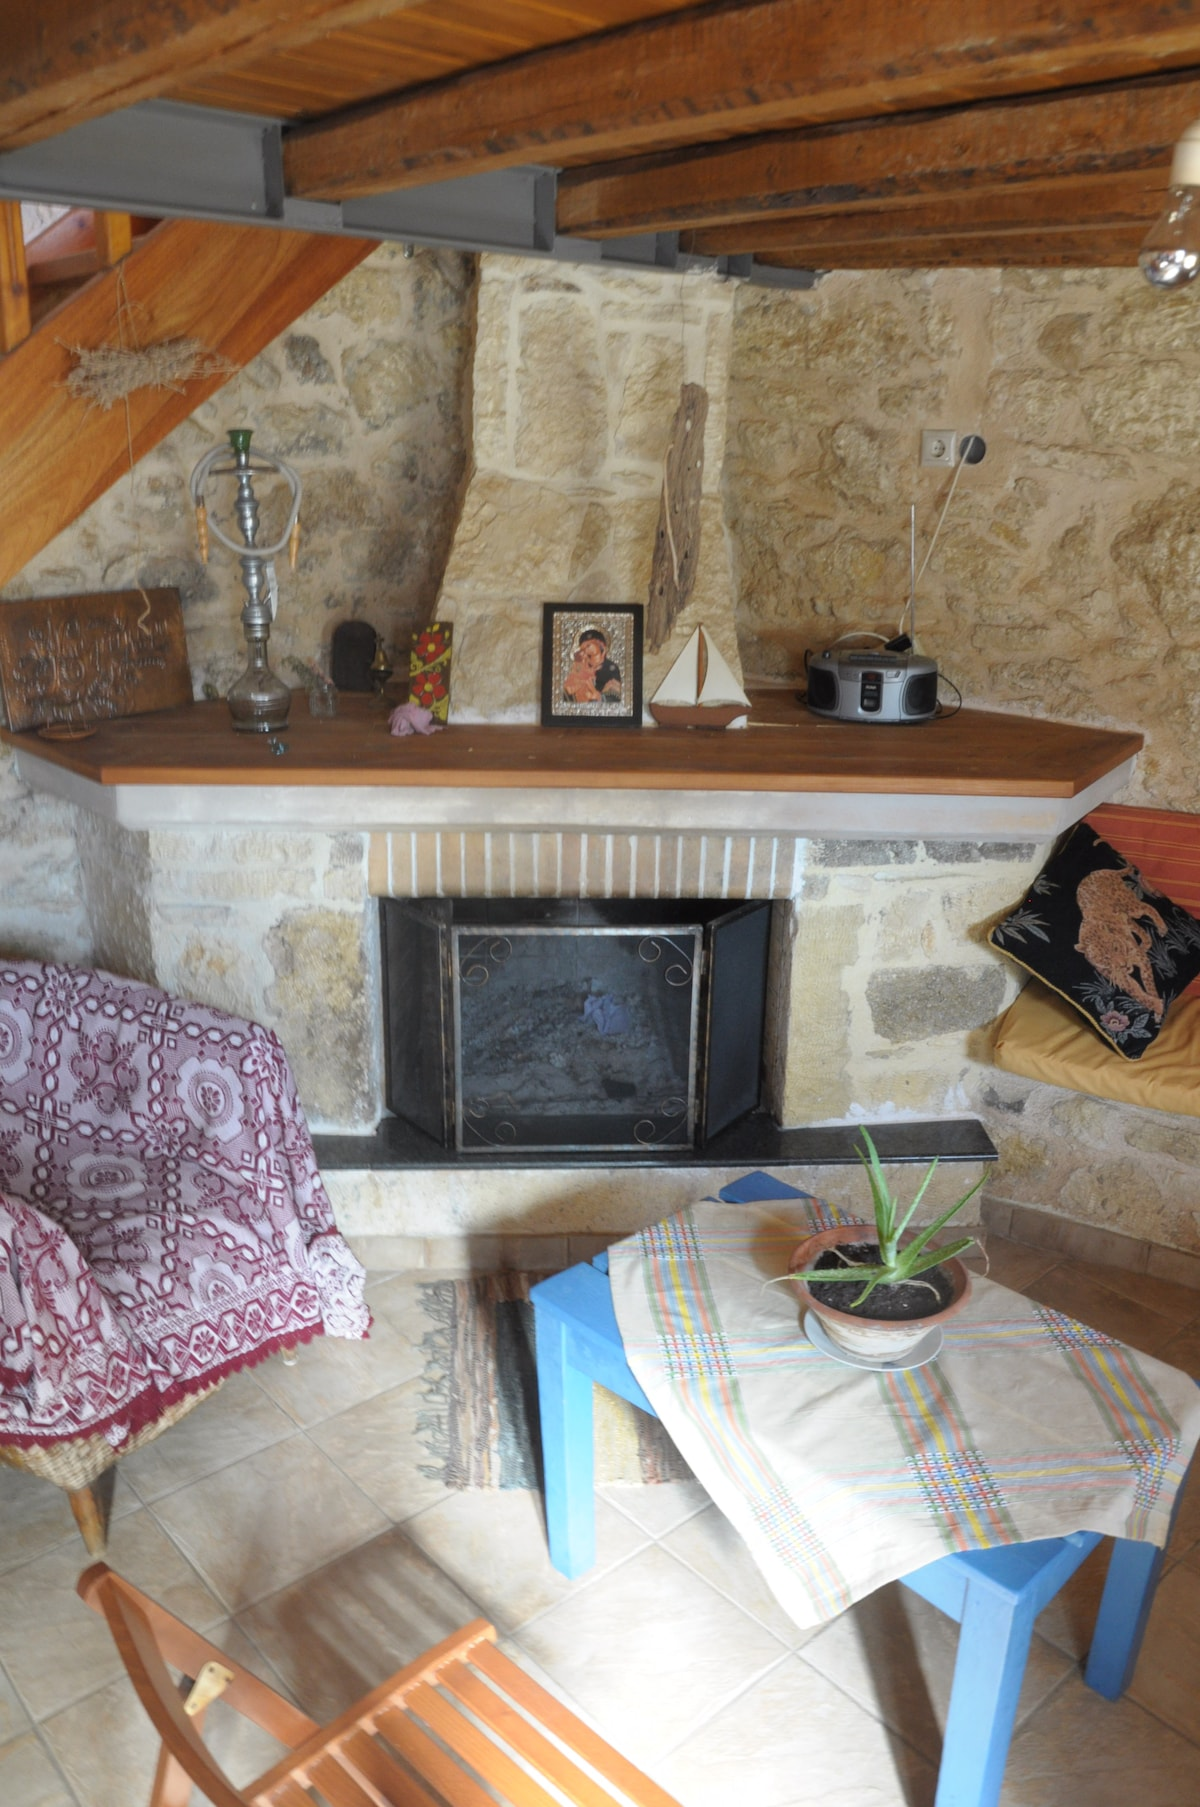 The fireplace works a treat and is great for roasting some local potatoes. During winter some wood will be provided.